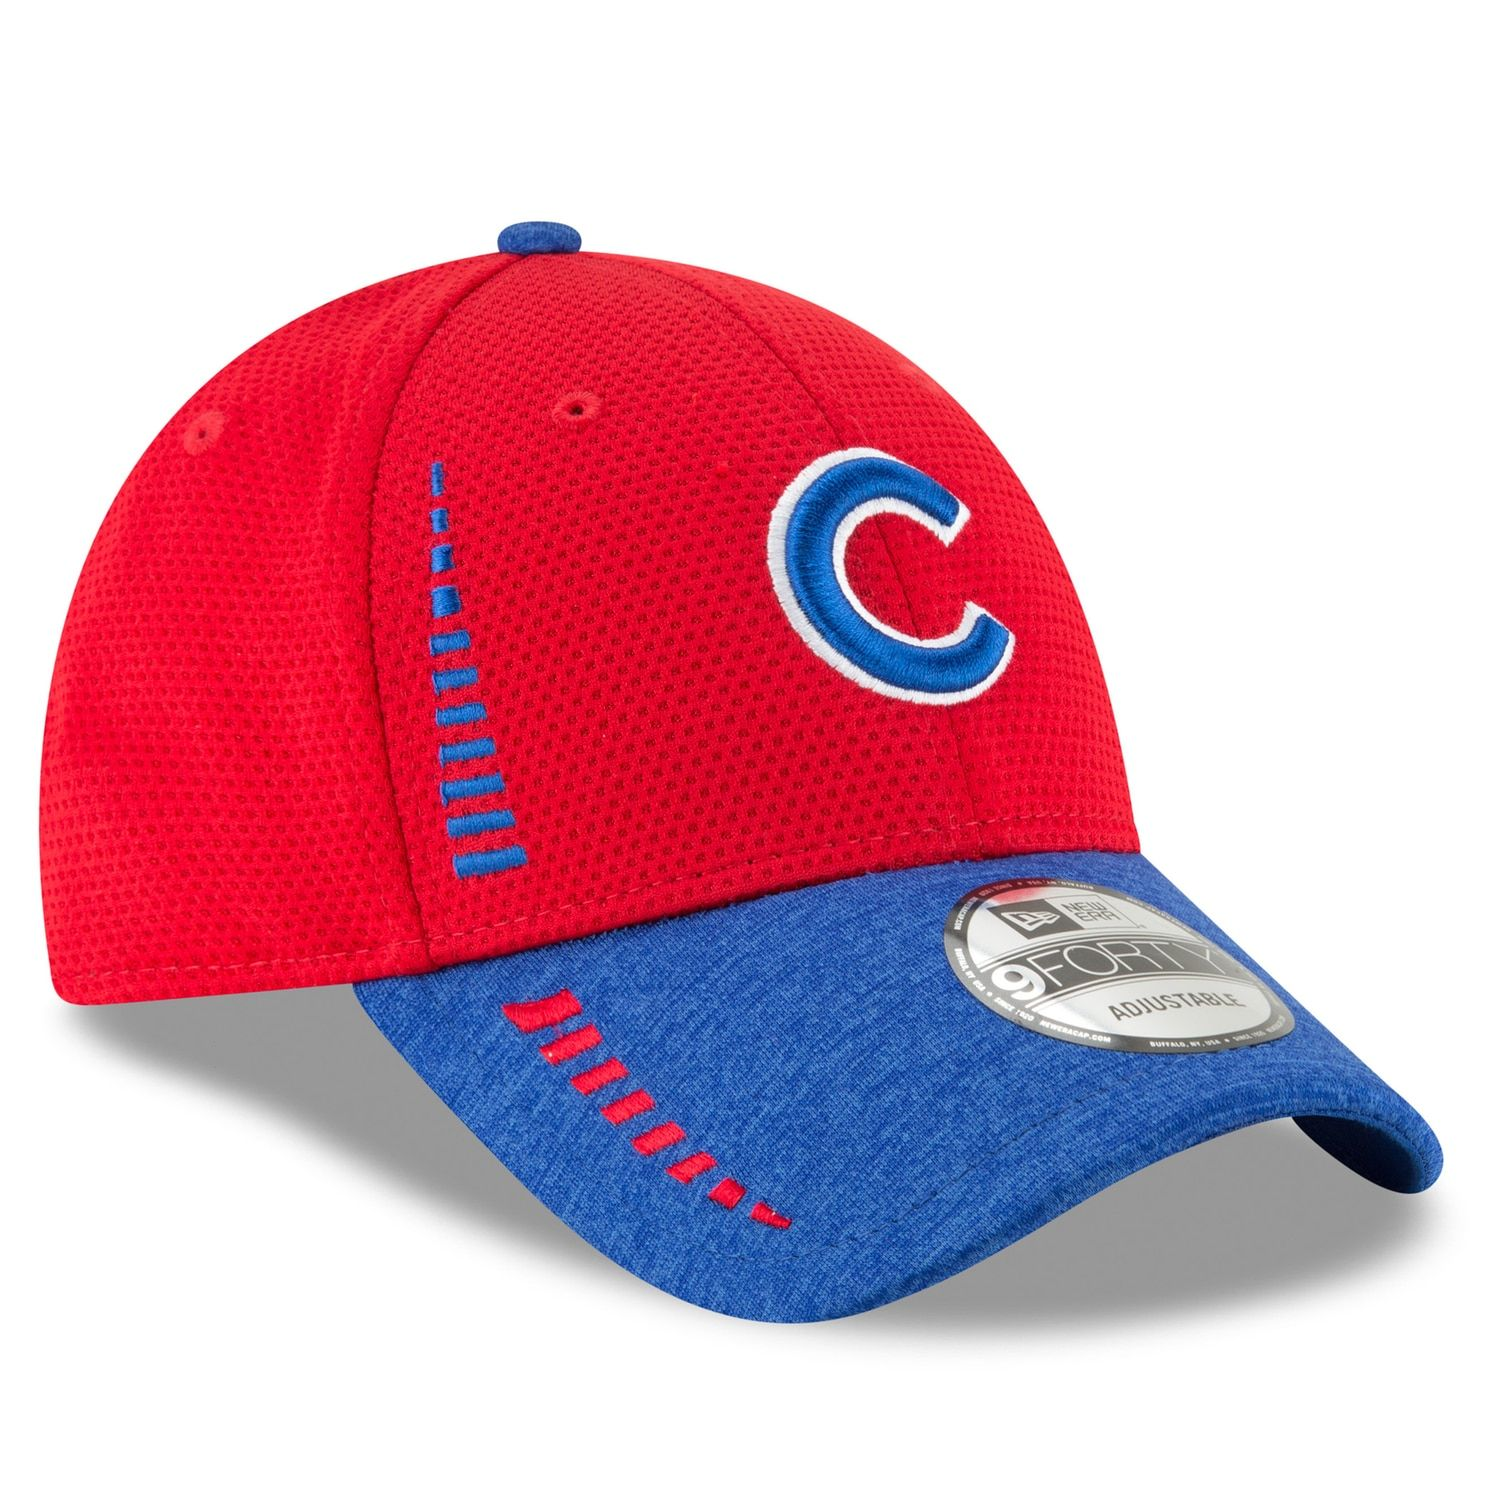 ed8cda15b Adult New Era Chicago Cubs 9FORTY Speed Tech Adjustable Cap   Crafts ...